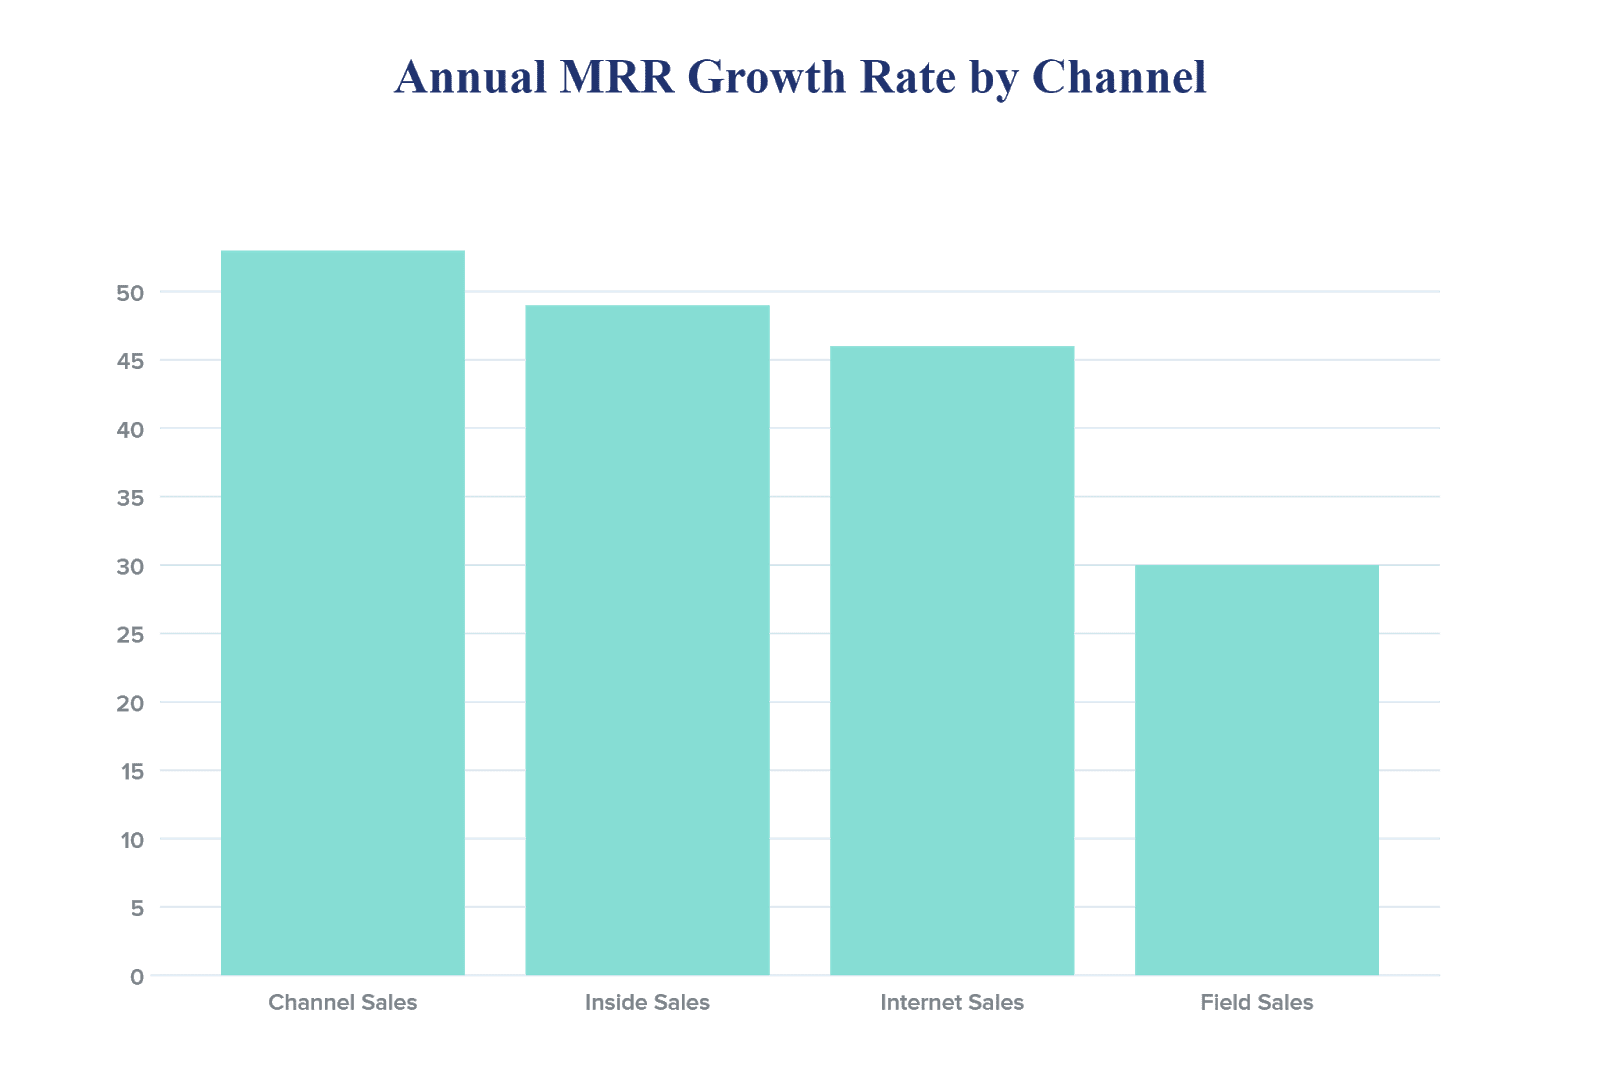 Annual MRR Growth Rate by Channel